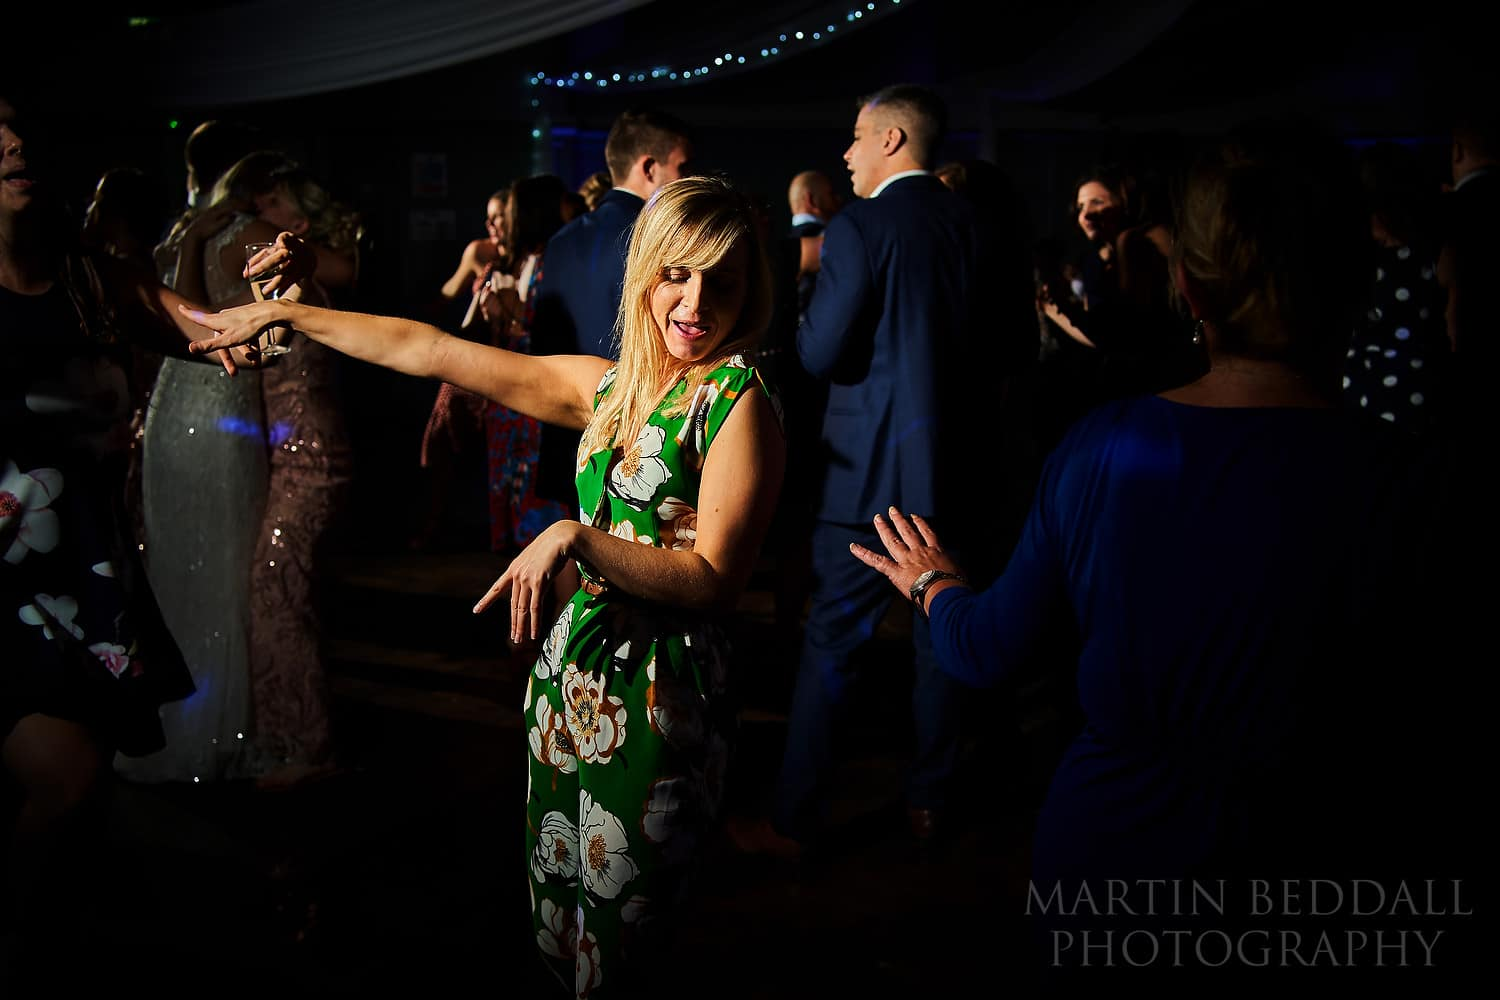 Pretty wedding guest dancing